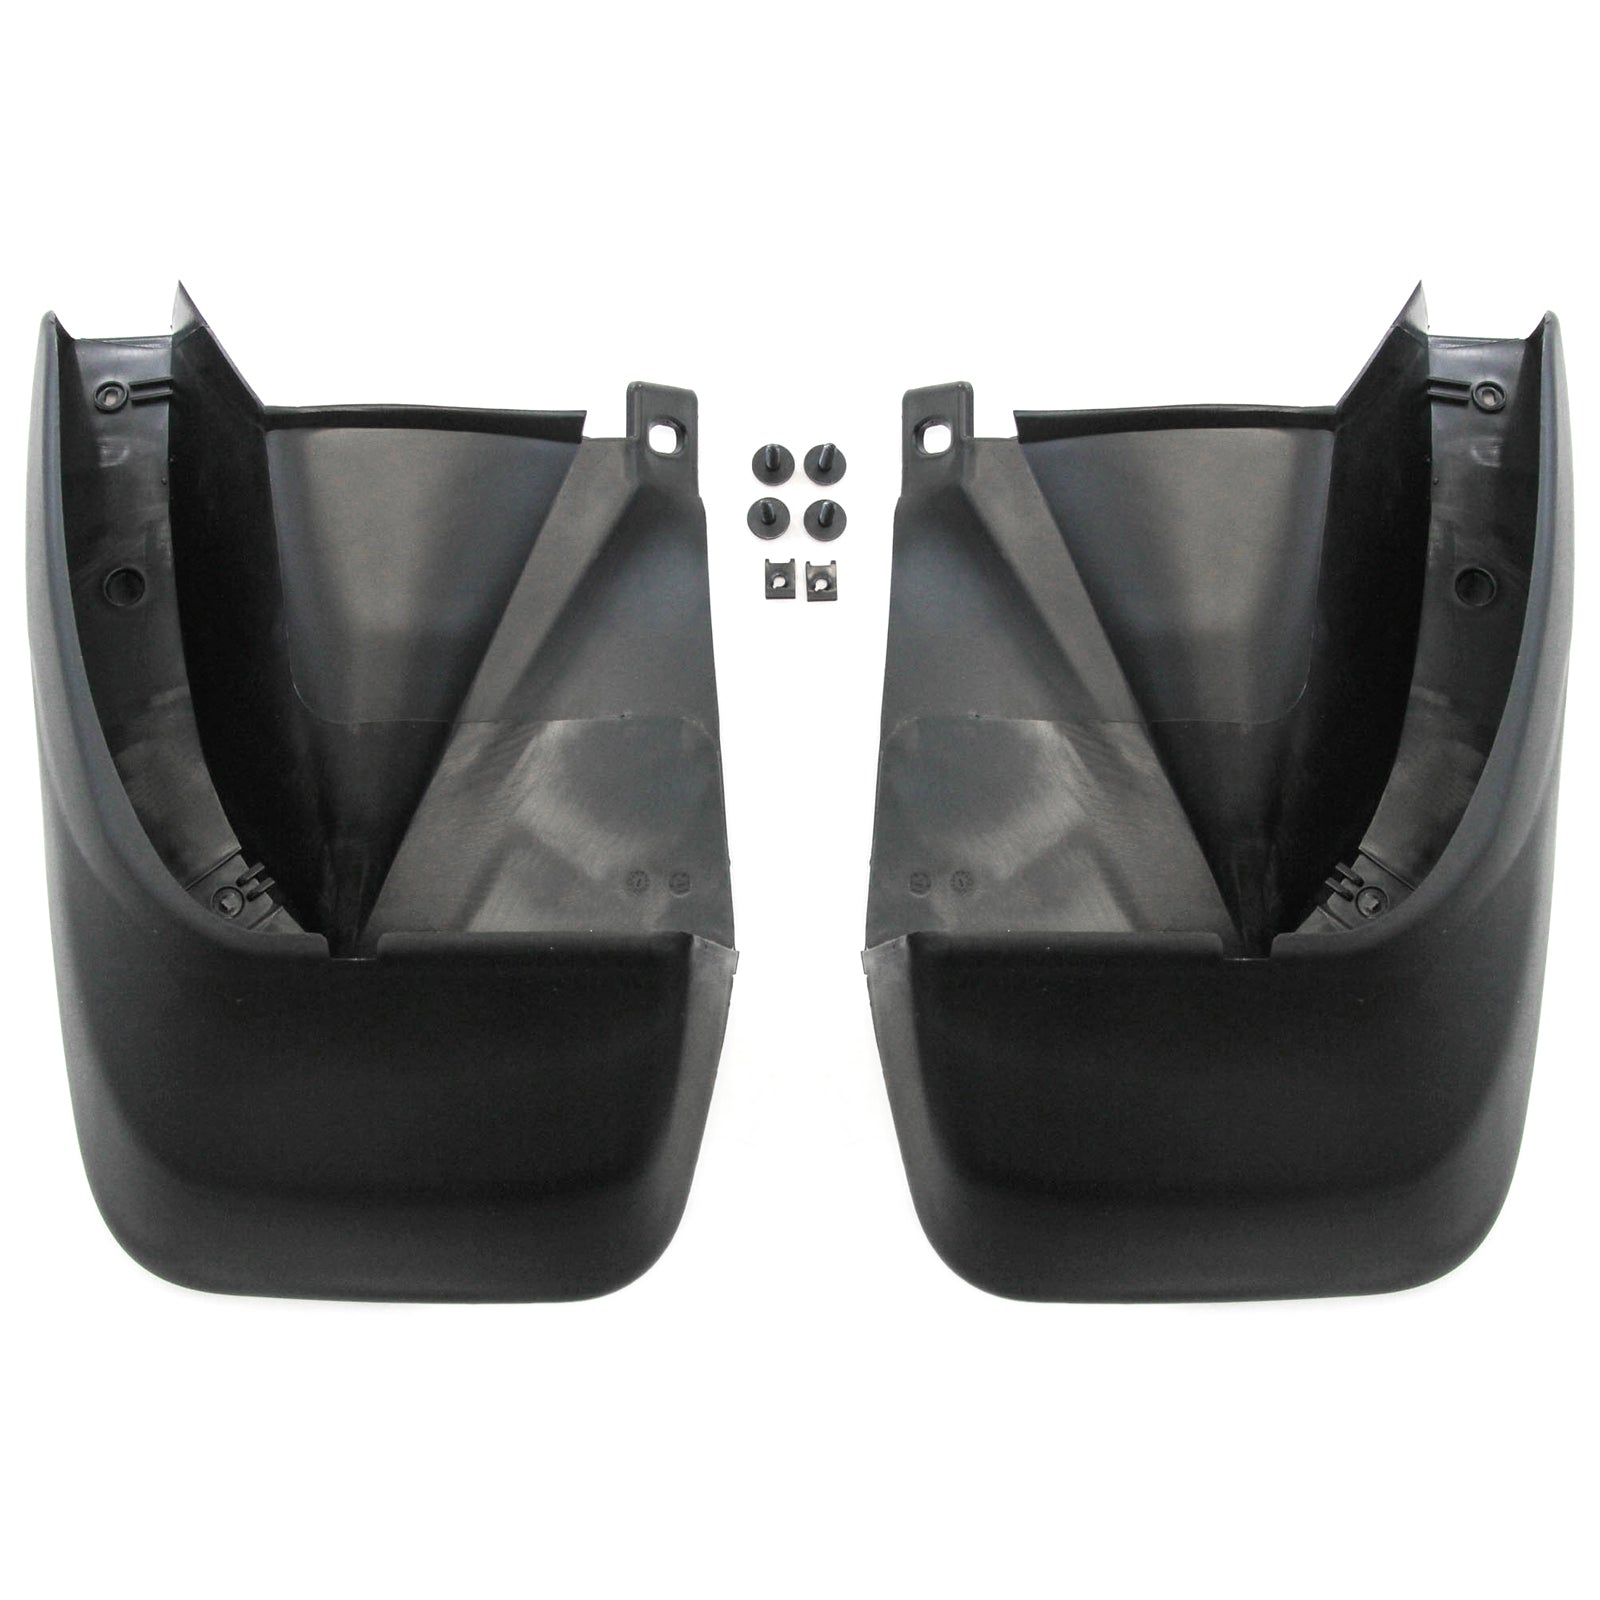 2003-2005 Compatible with Honda Pilot Mud Flaps Guards Splash Protector Rear Molded Pair 2pc